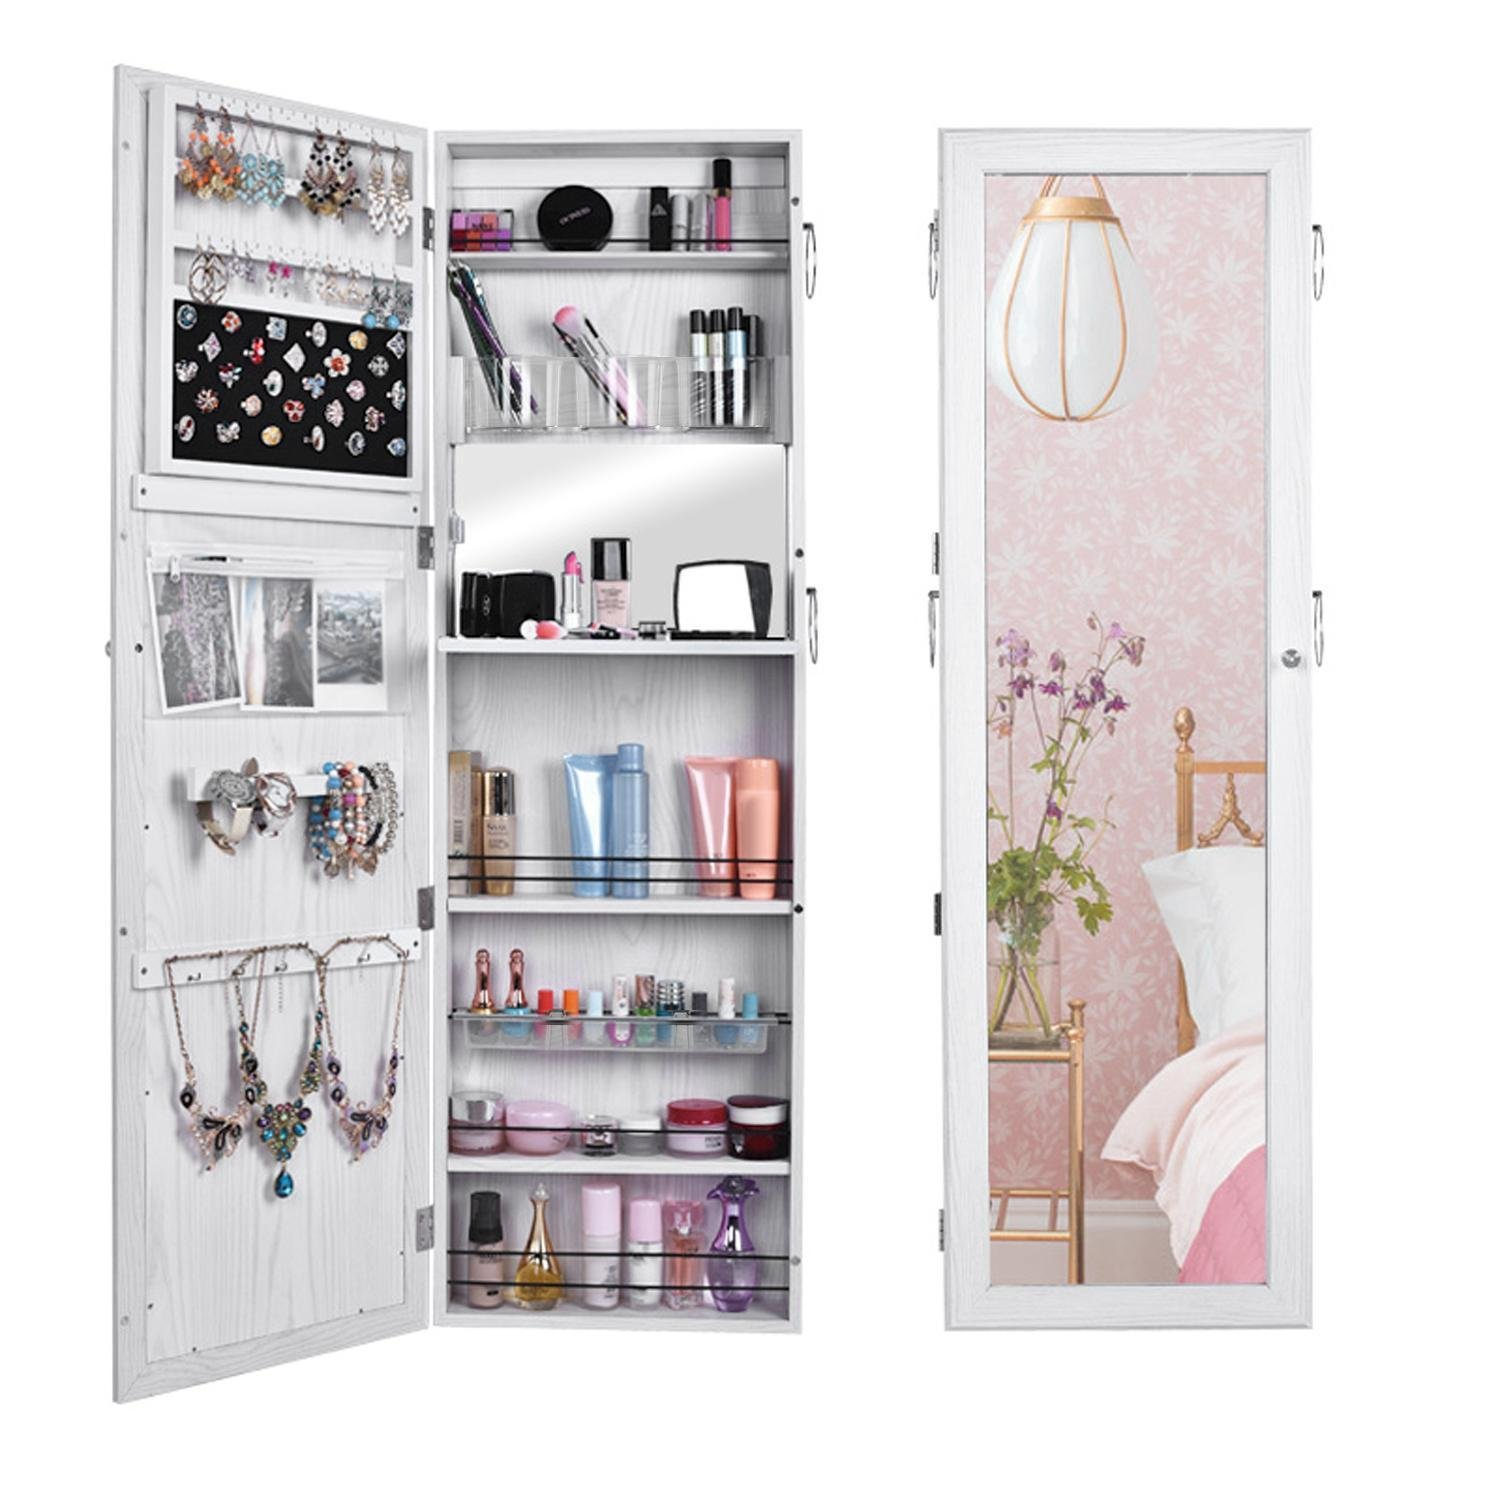 Jewelry Cabinet, Lockable Wall Door Mounted Jewelry Armoire Storage Organizer with Mirror (US STOCK)